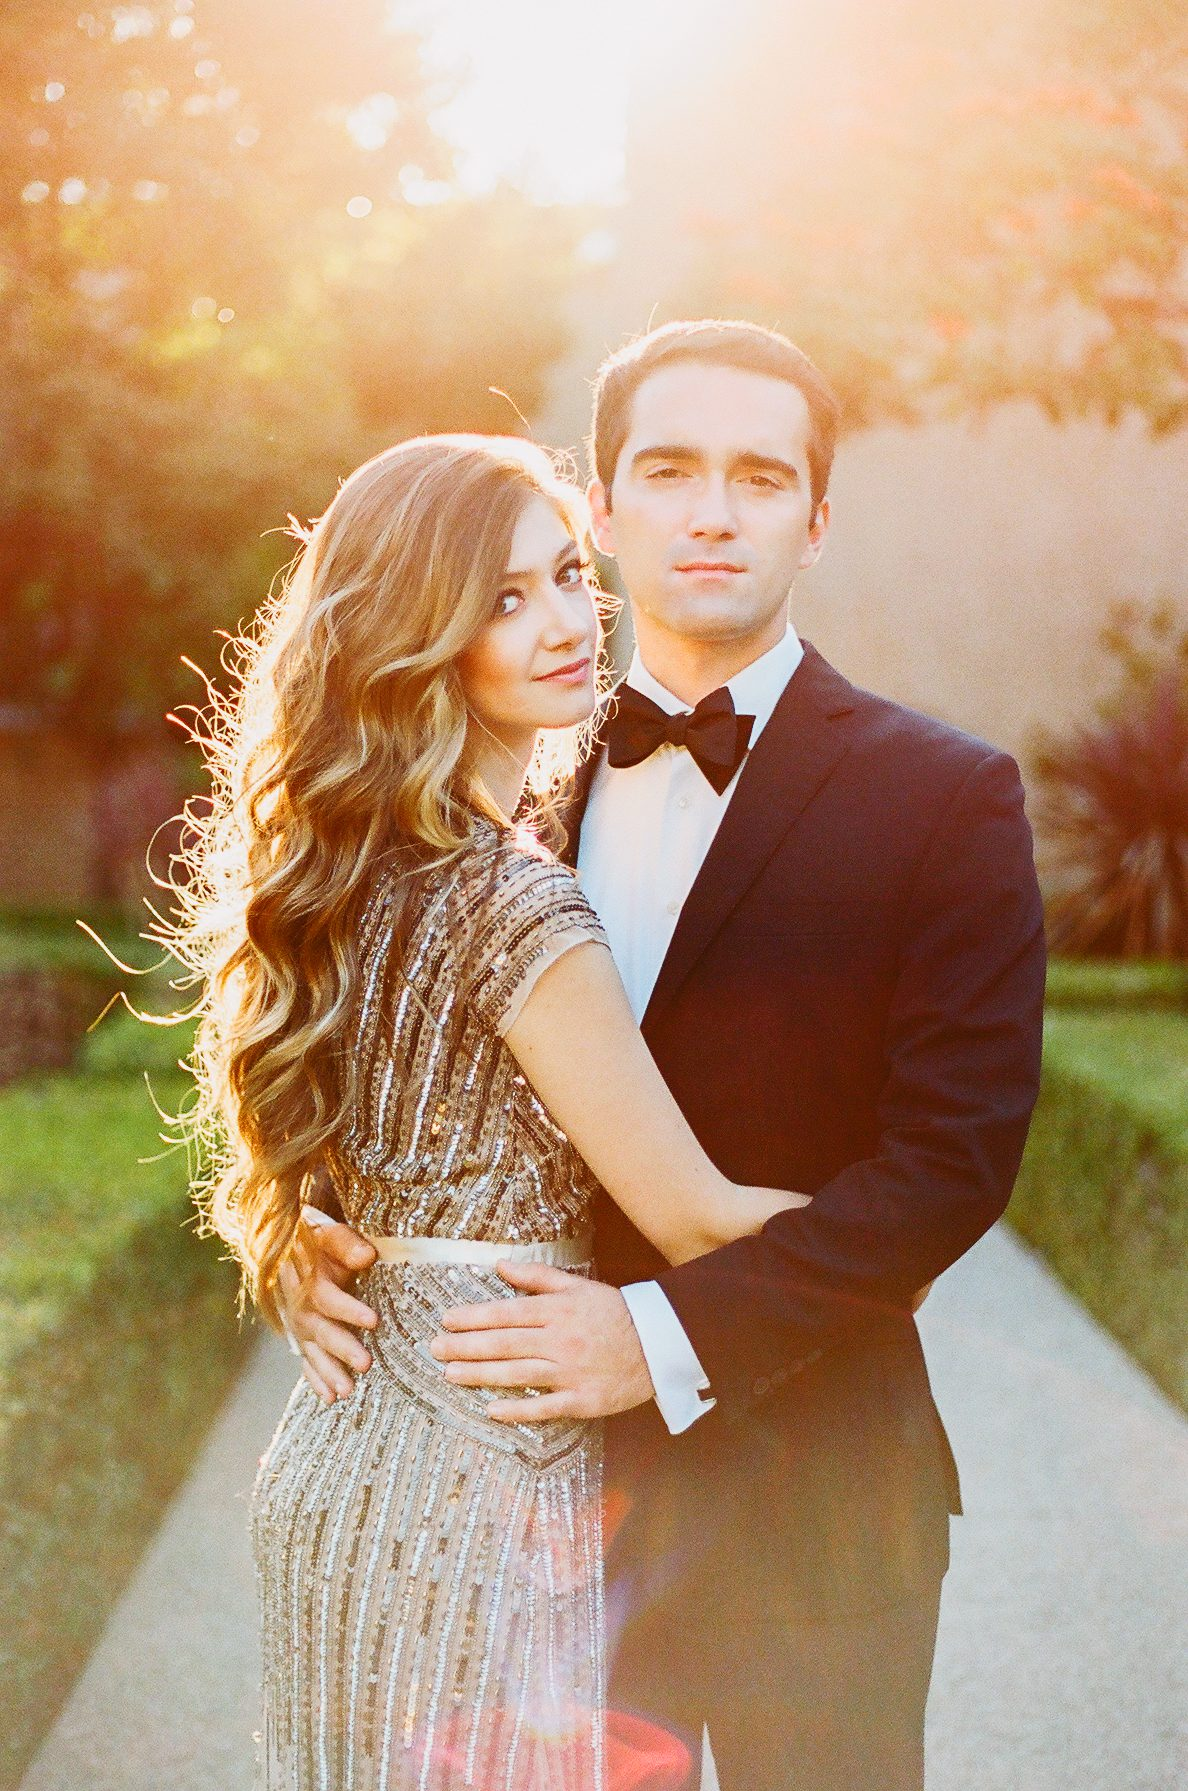 Romantic Engagement Session at Balboa Park Featured on CWD